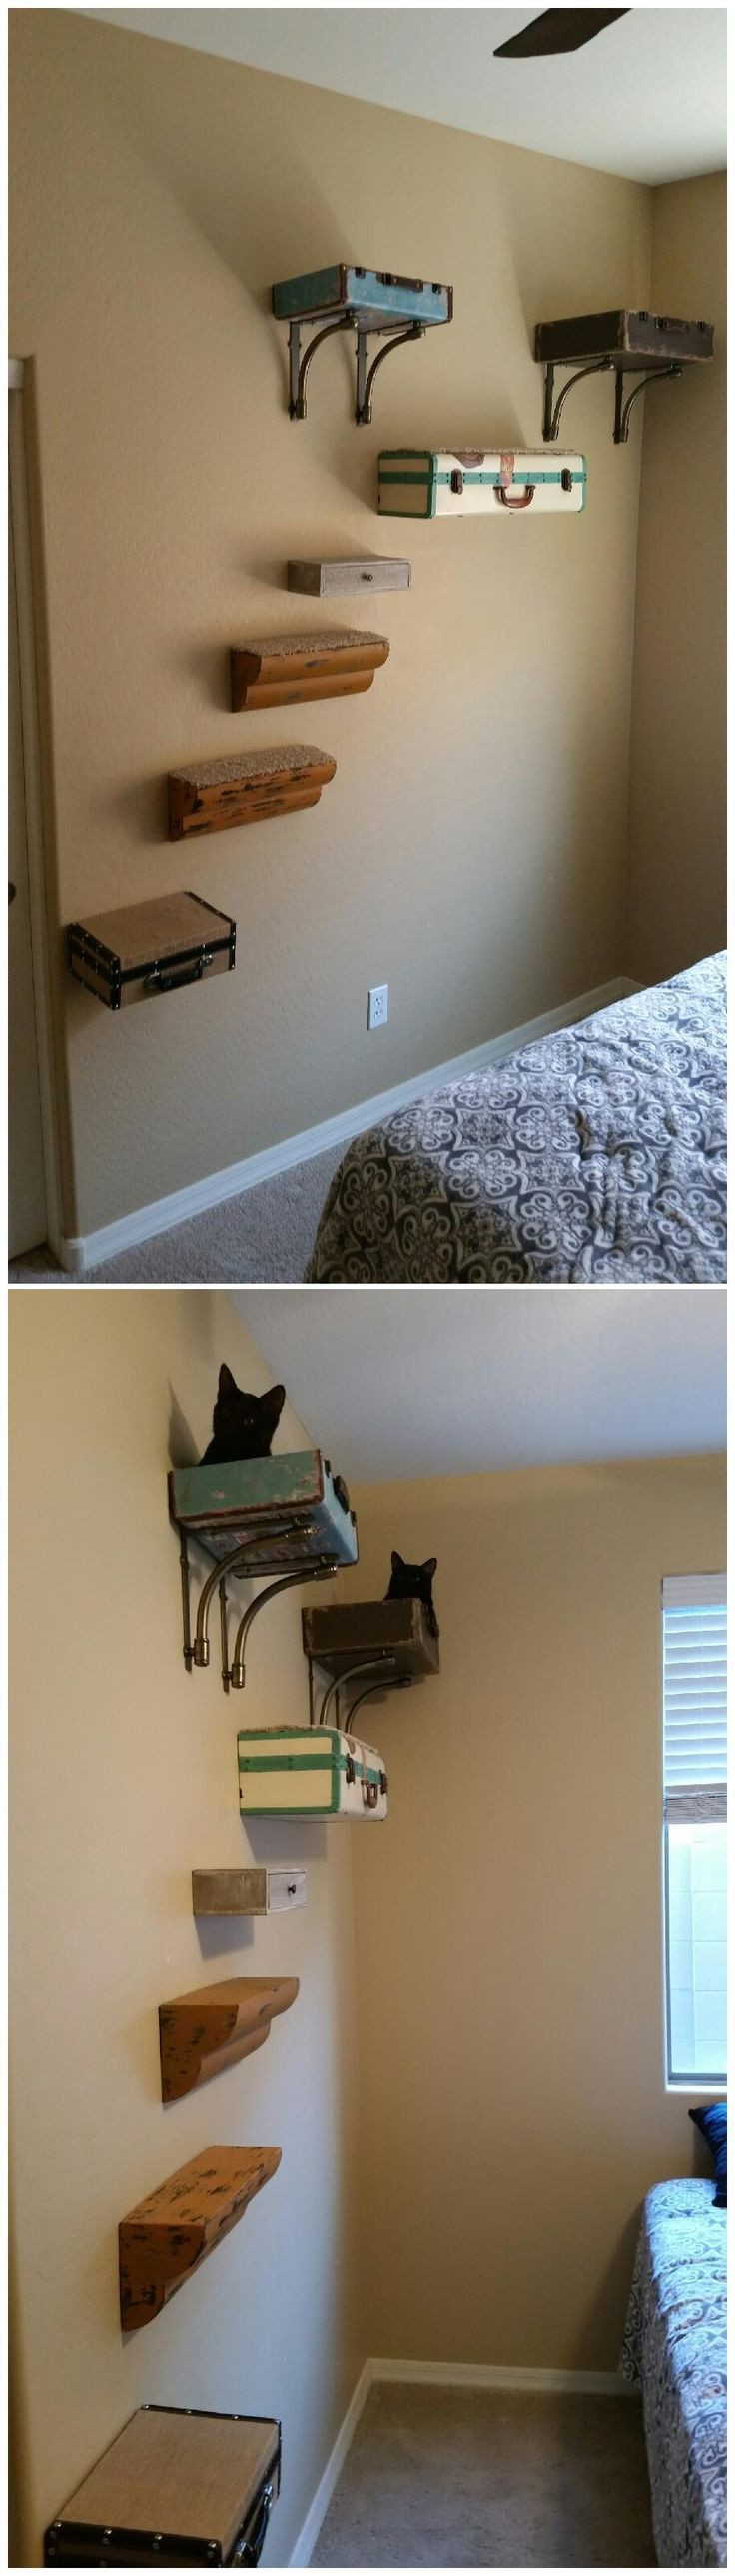 Catification Wall Suitcase Beds Shelves Stairs Cat Tree